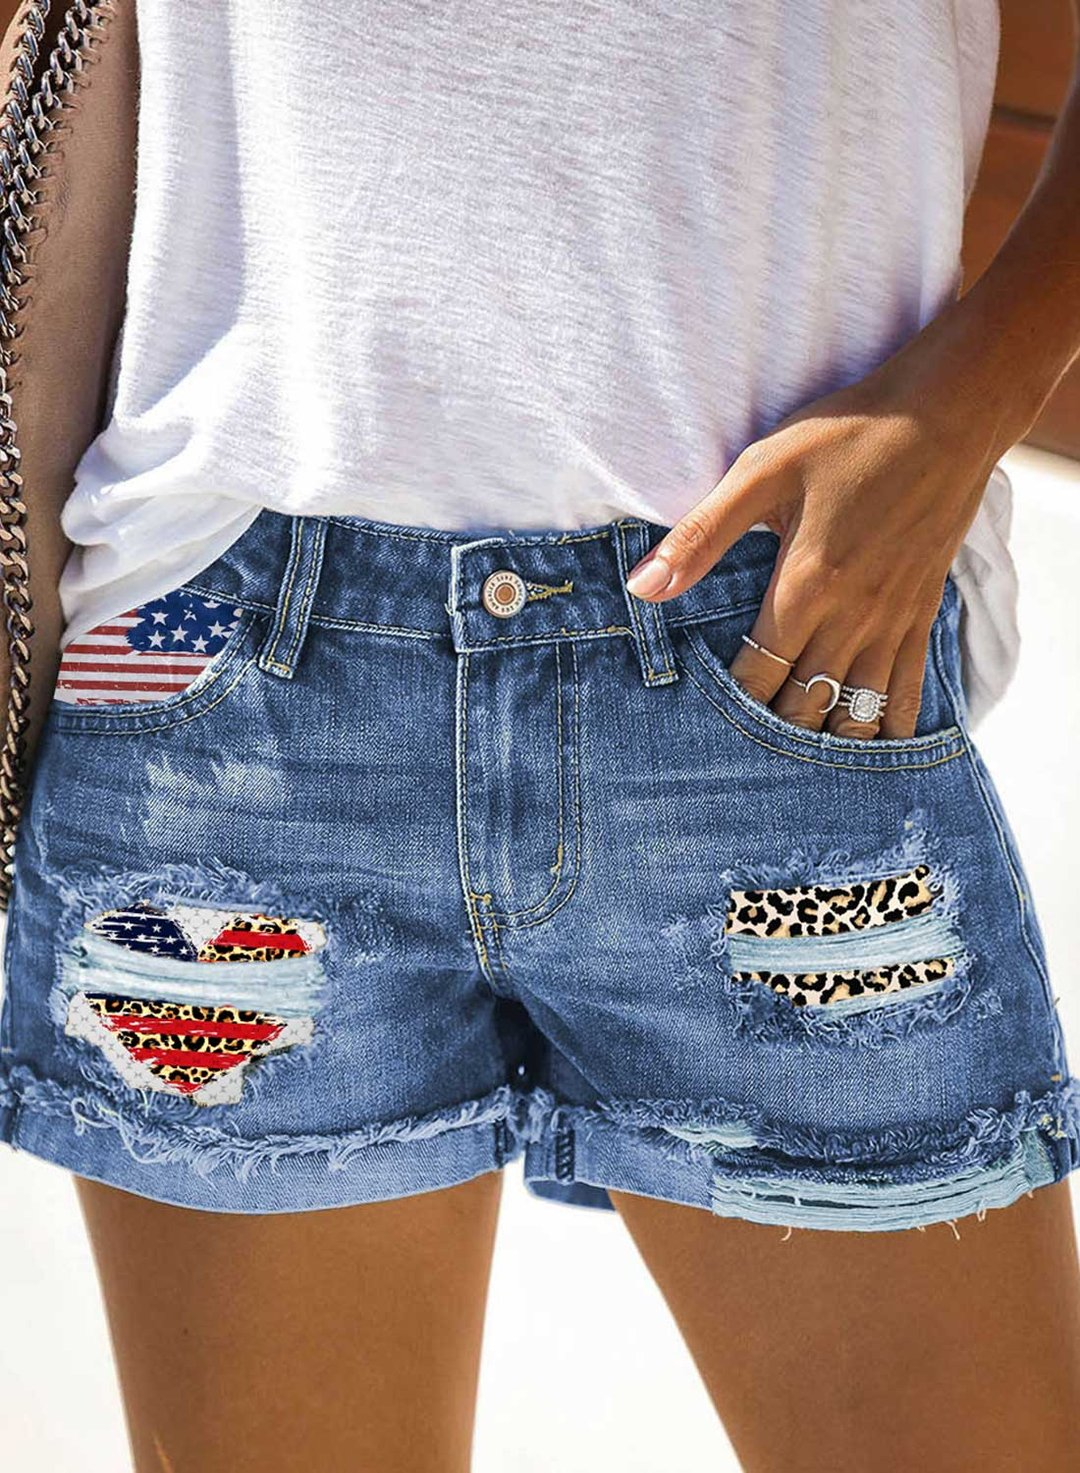 Sky Blue Women's Shorts Leopard Flag Print Patchwork Denim Shorts LC782219-4